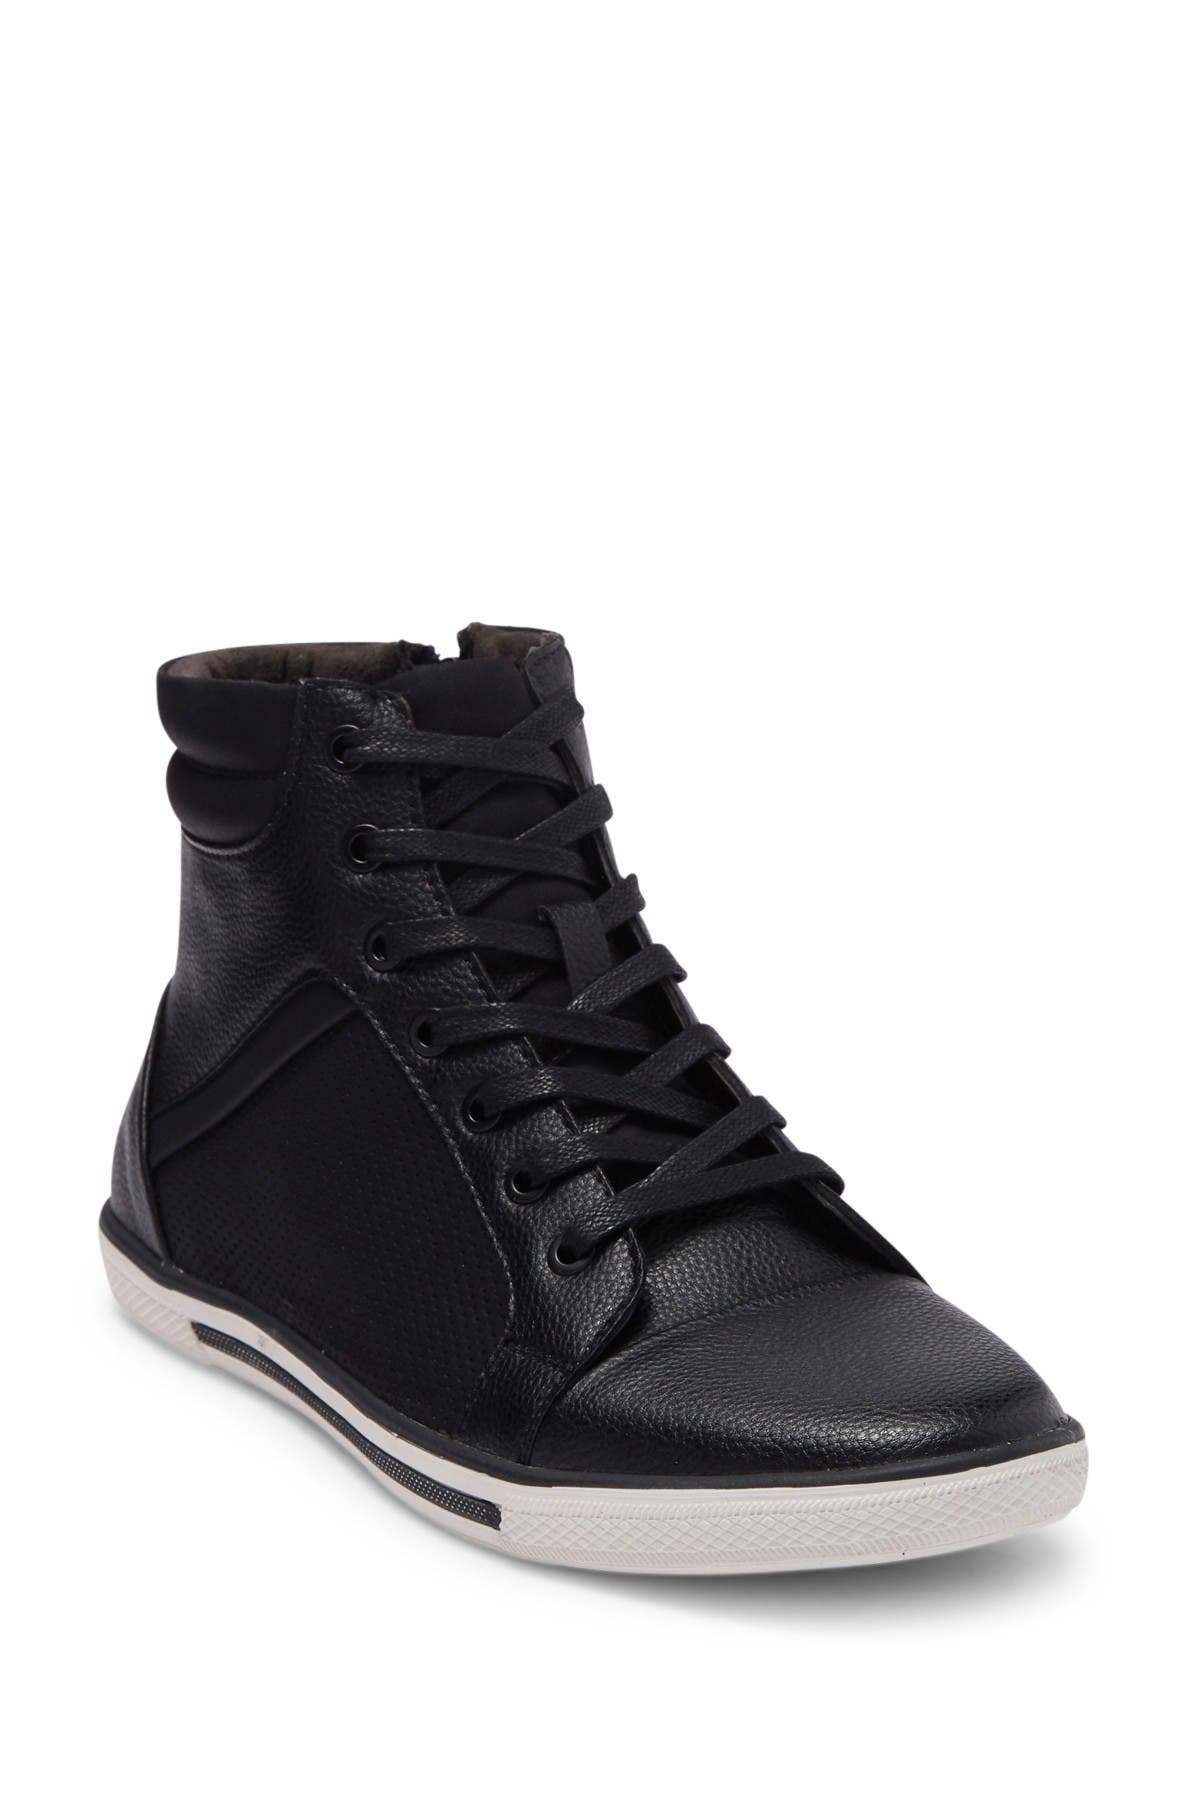 Image of Unlisted, A Kenneth Cole Production Crown Worthy High-Top Sneaker